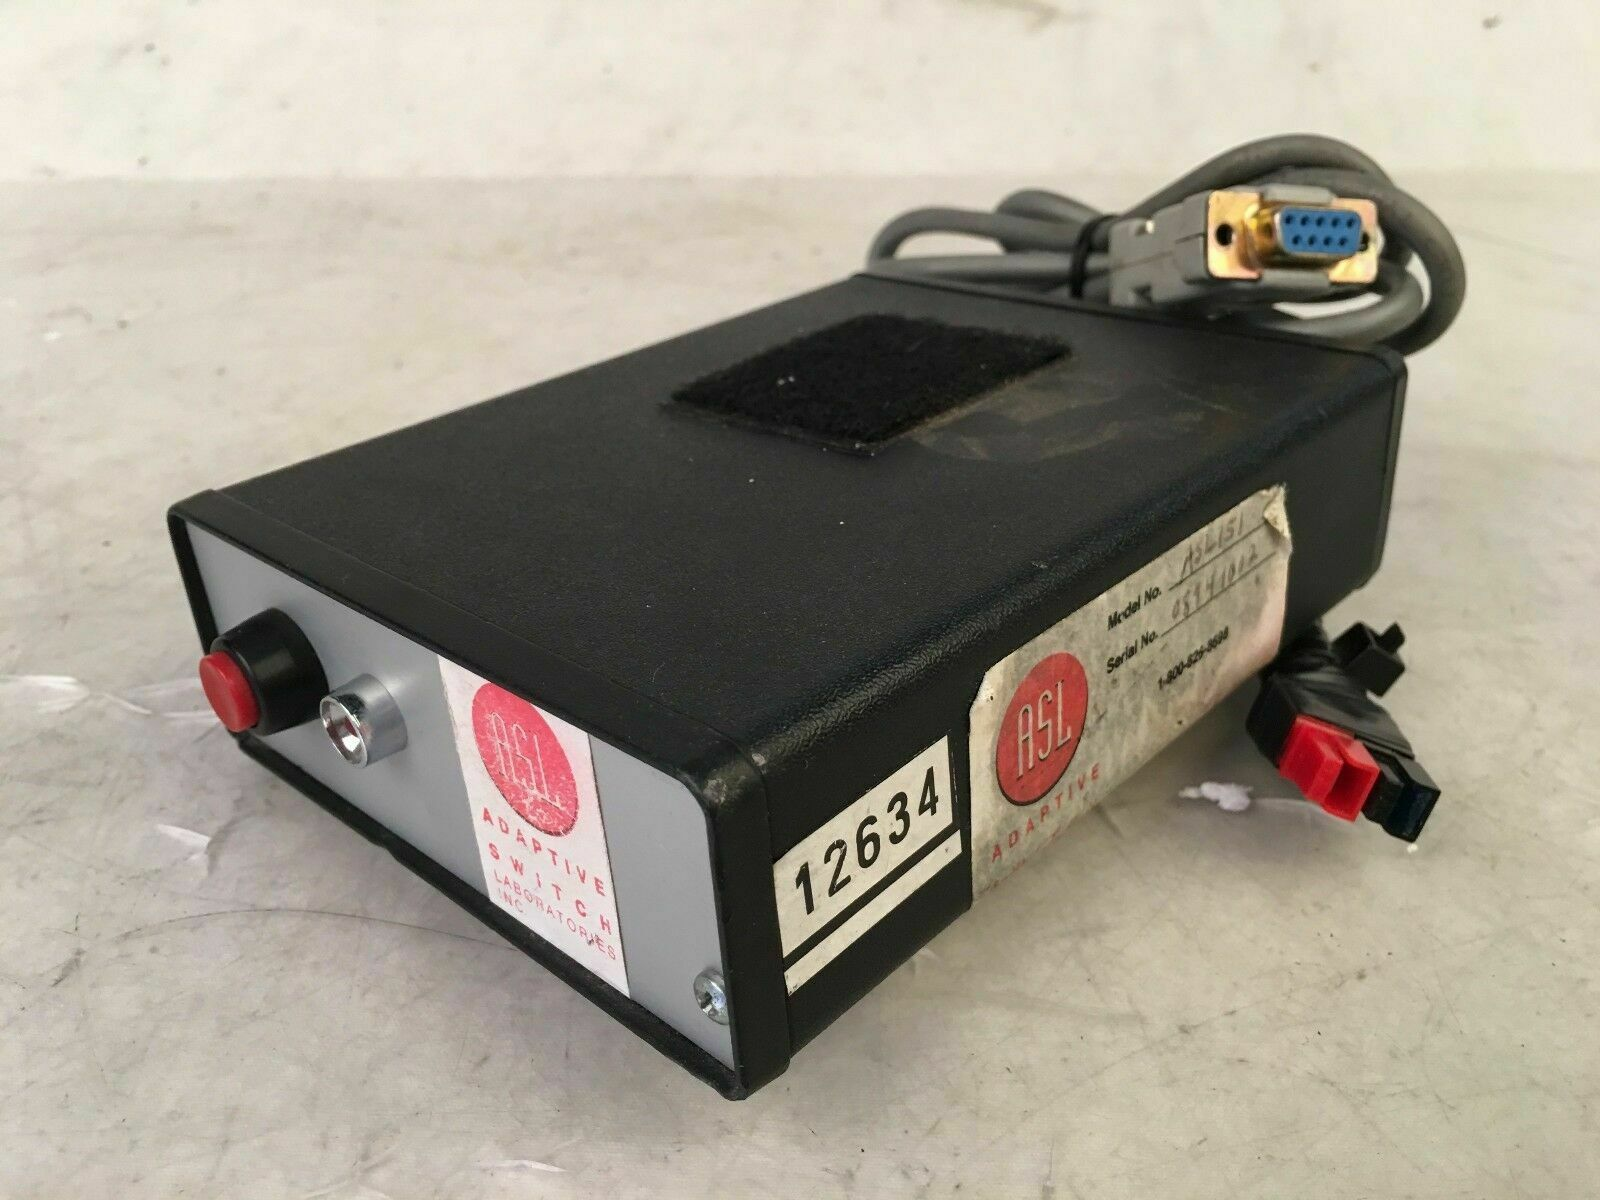 ASL151 Adaptive Switch Laboratories Module for Power Wheelchairs